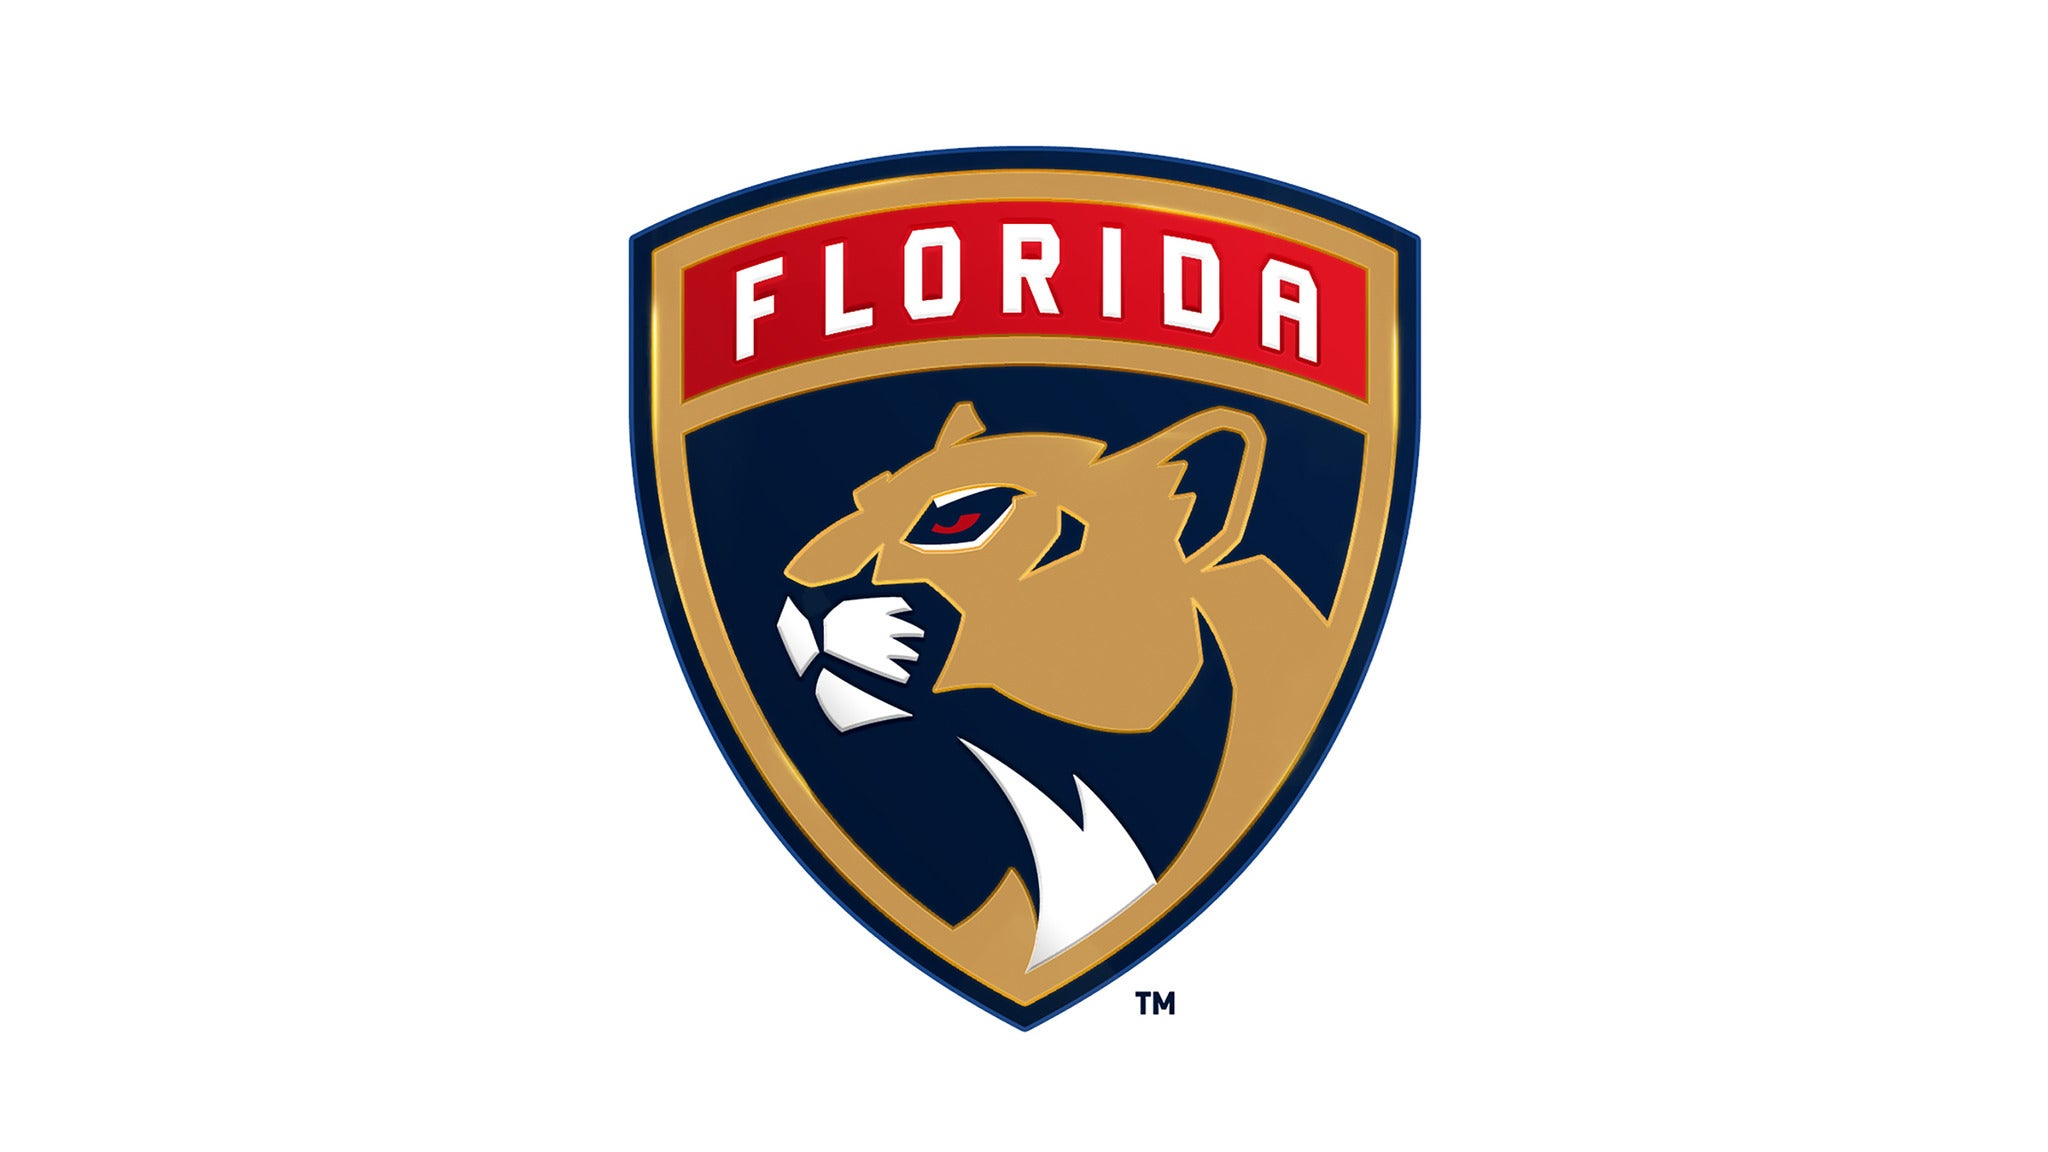 Florida Panthers v San Jose Sharks at BB&T Center - Sunrise, FL 33323